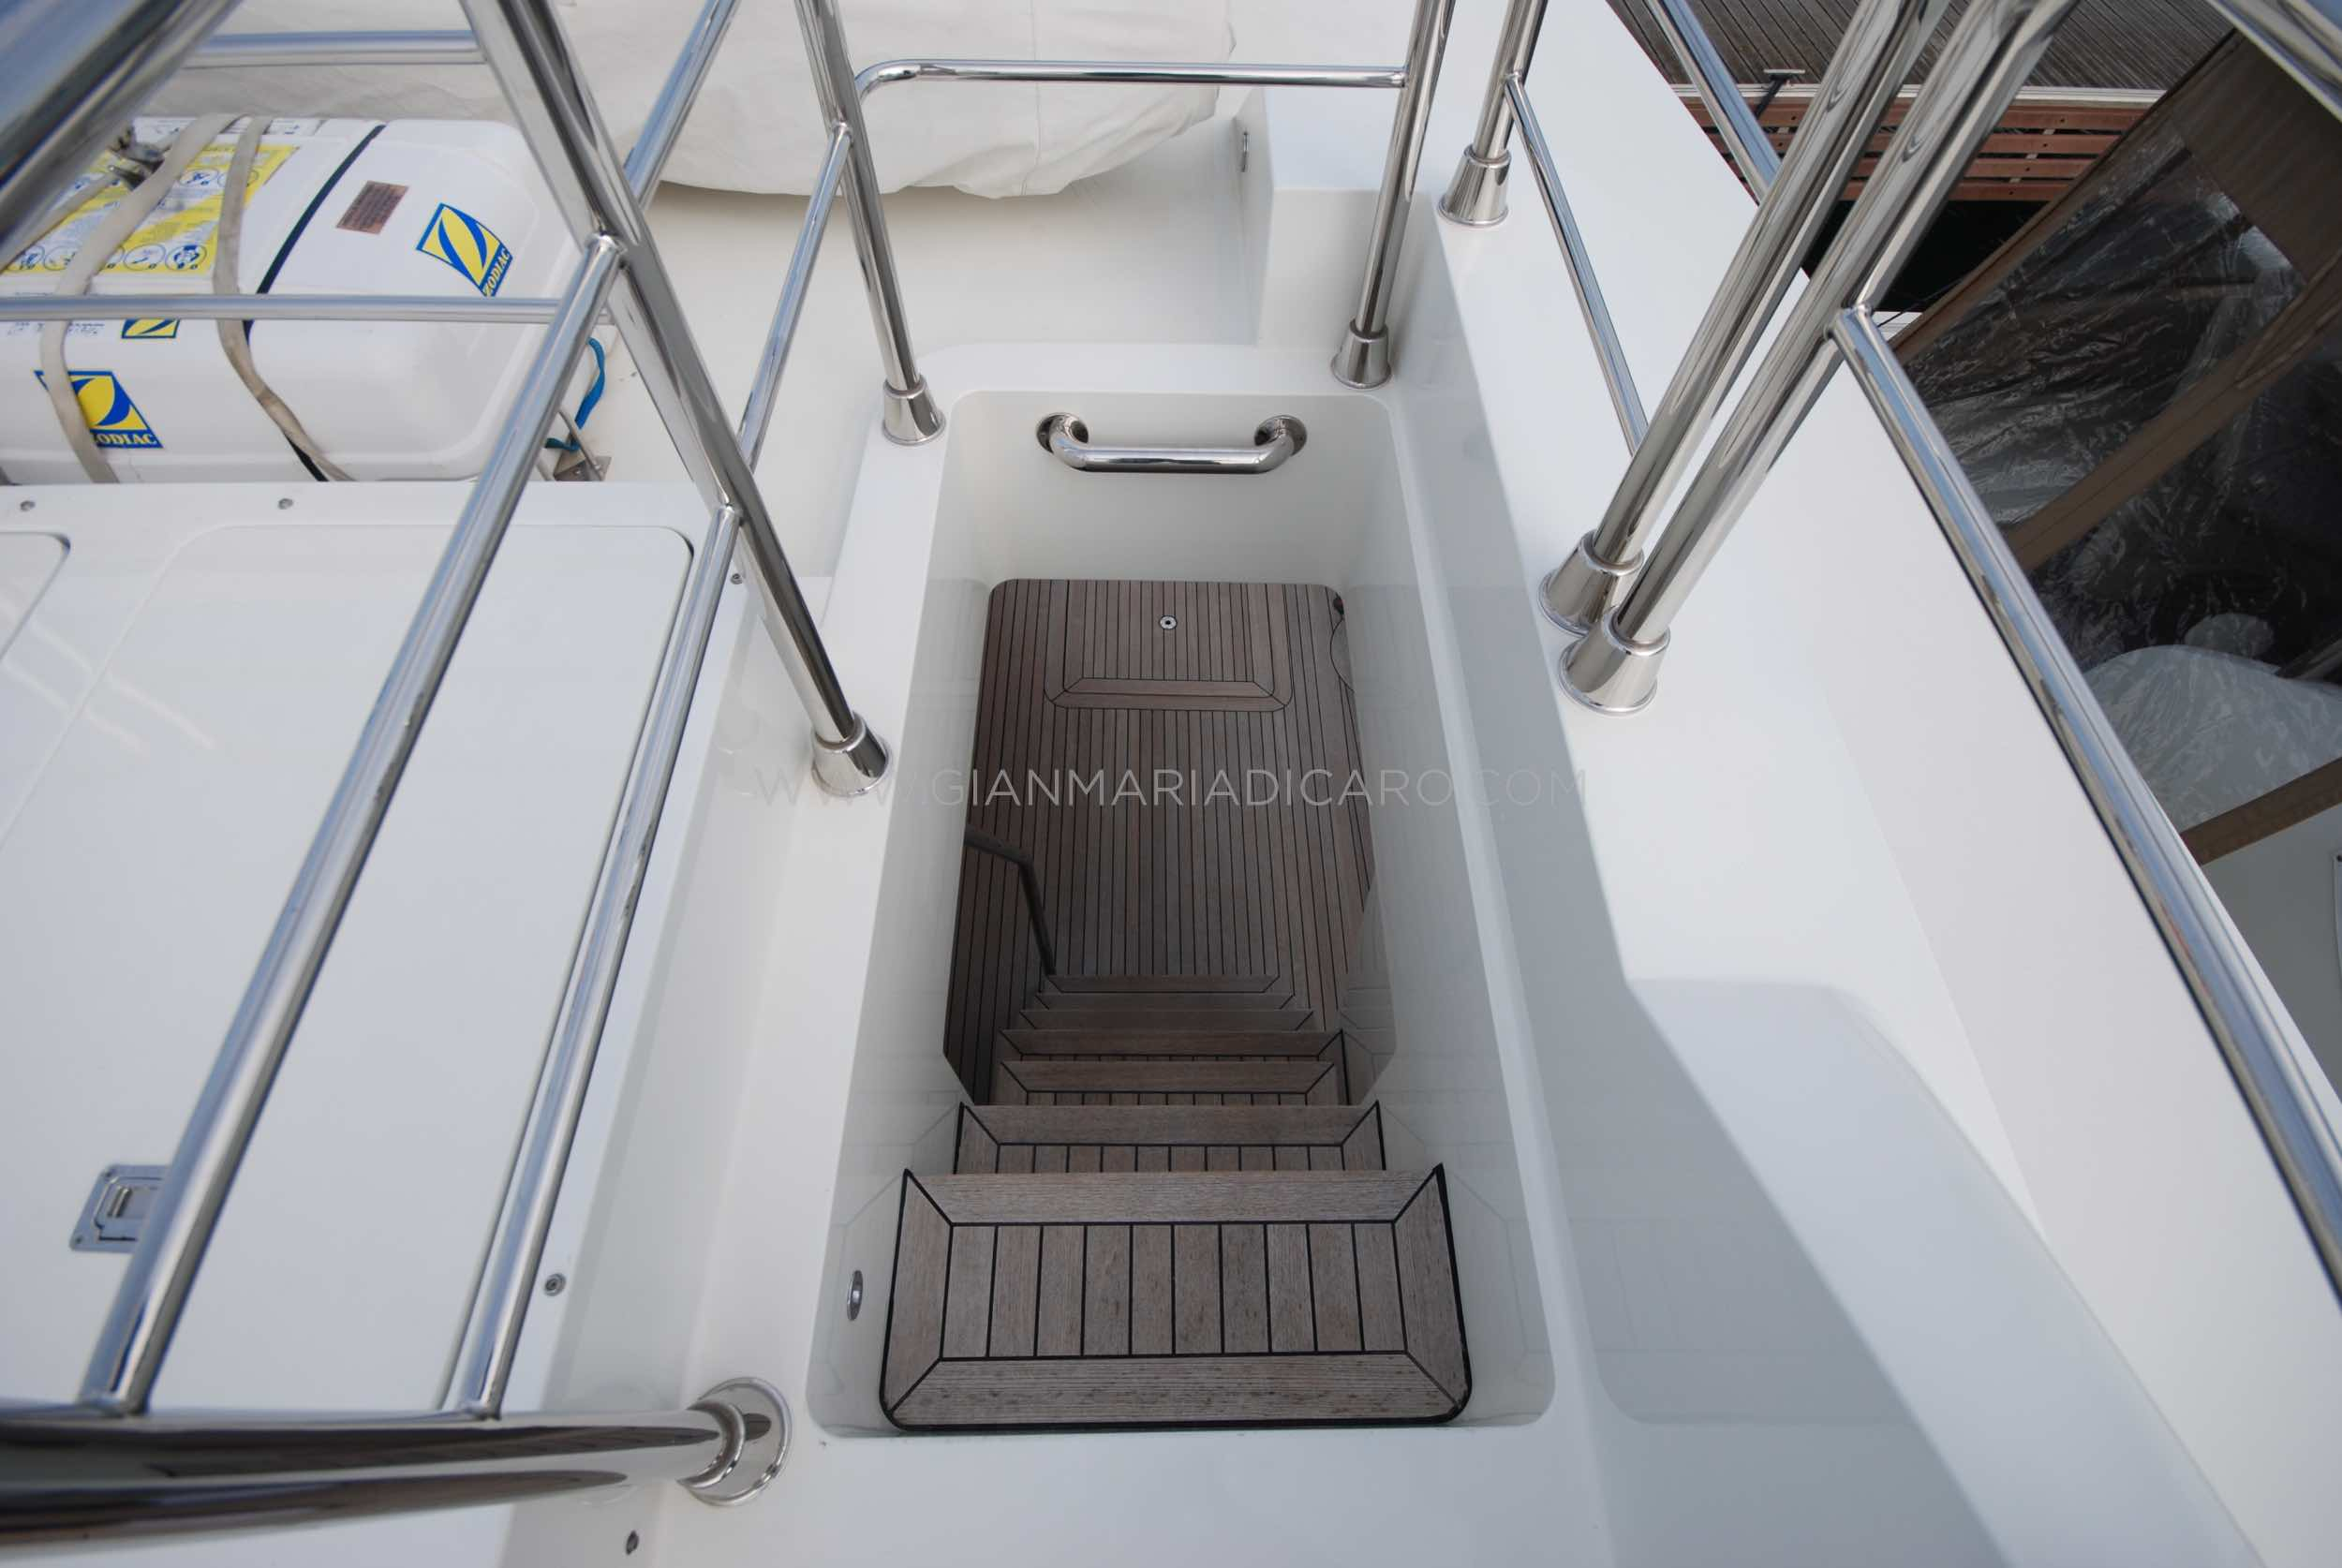 emys-yacht-22-unica-for-sale-111.jpg